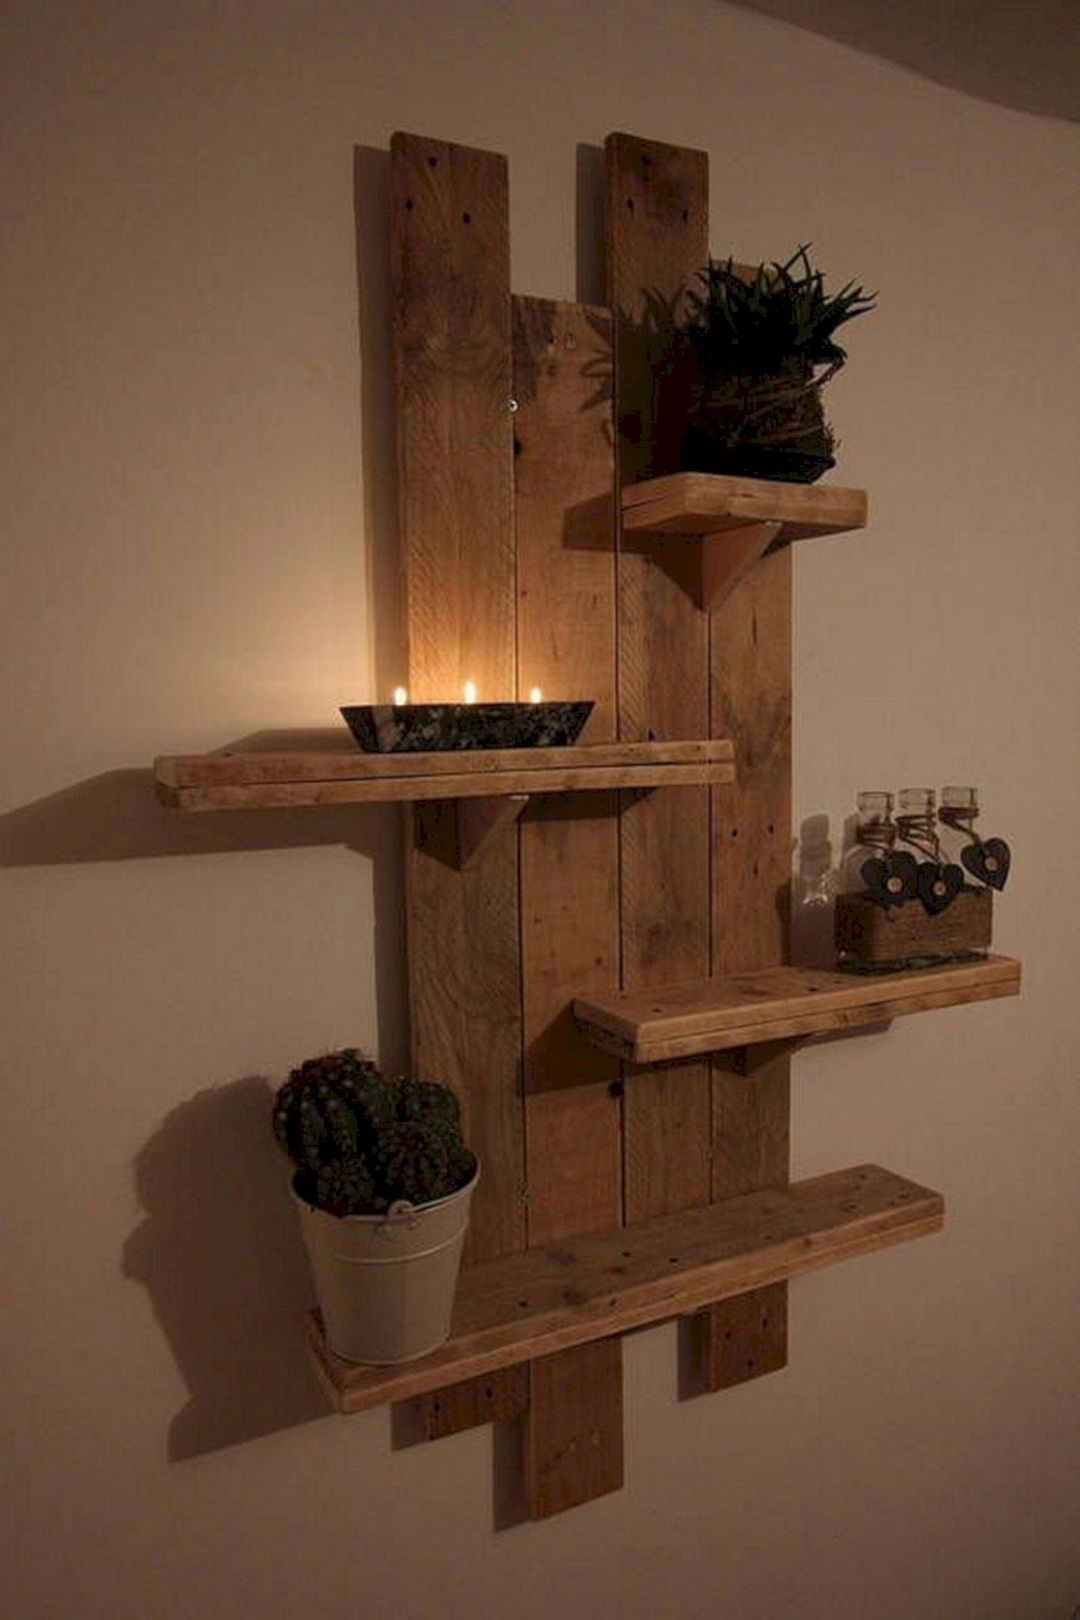 15 Unique Diy Rustic Wall Shelf Ideas For Awesome Home Decoration